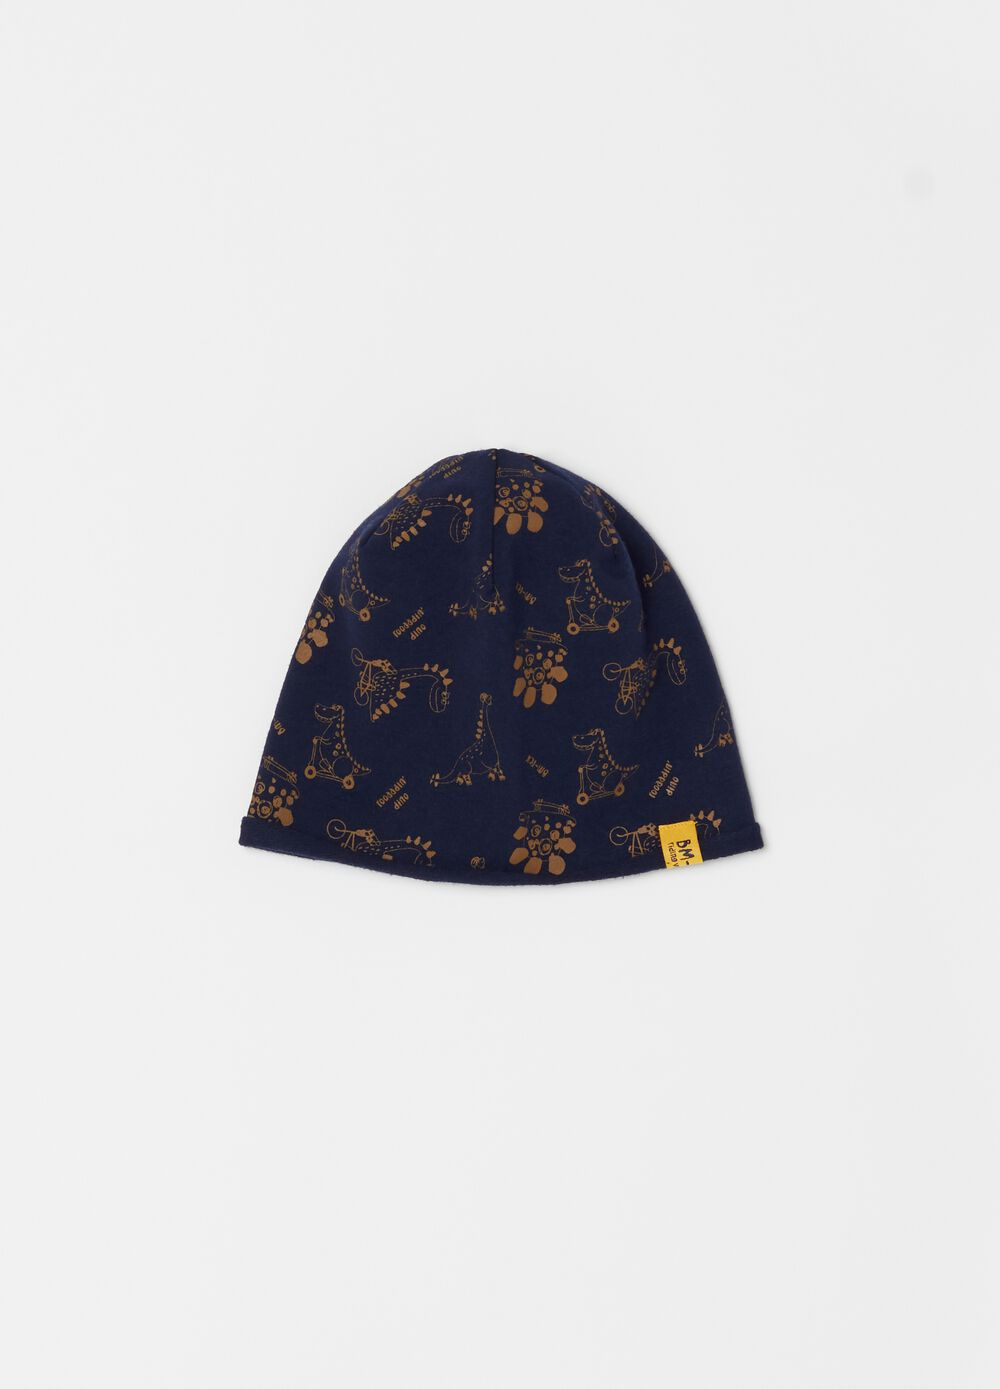 Patterned jersey hat